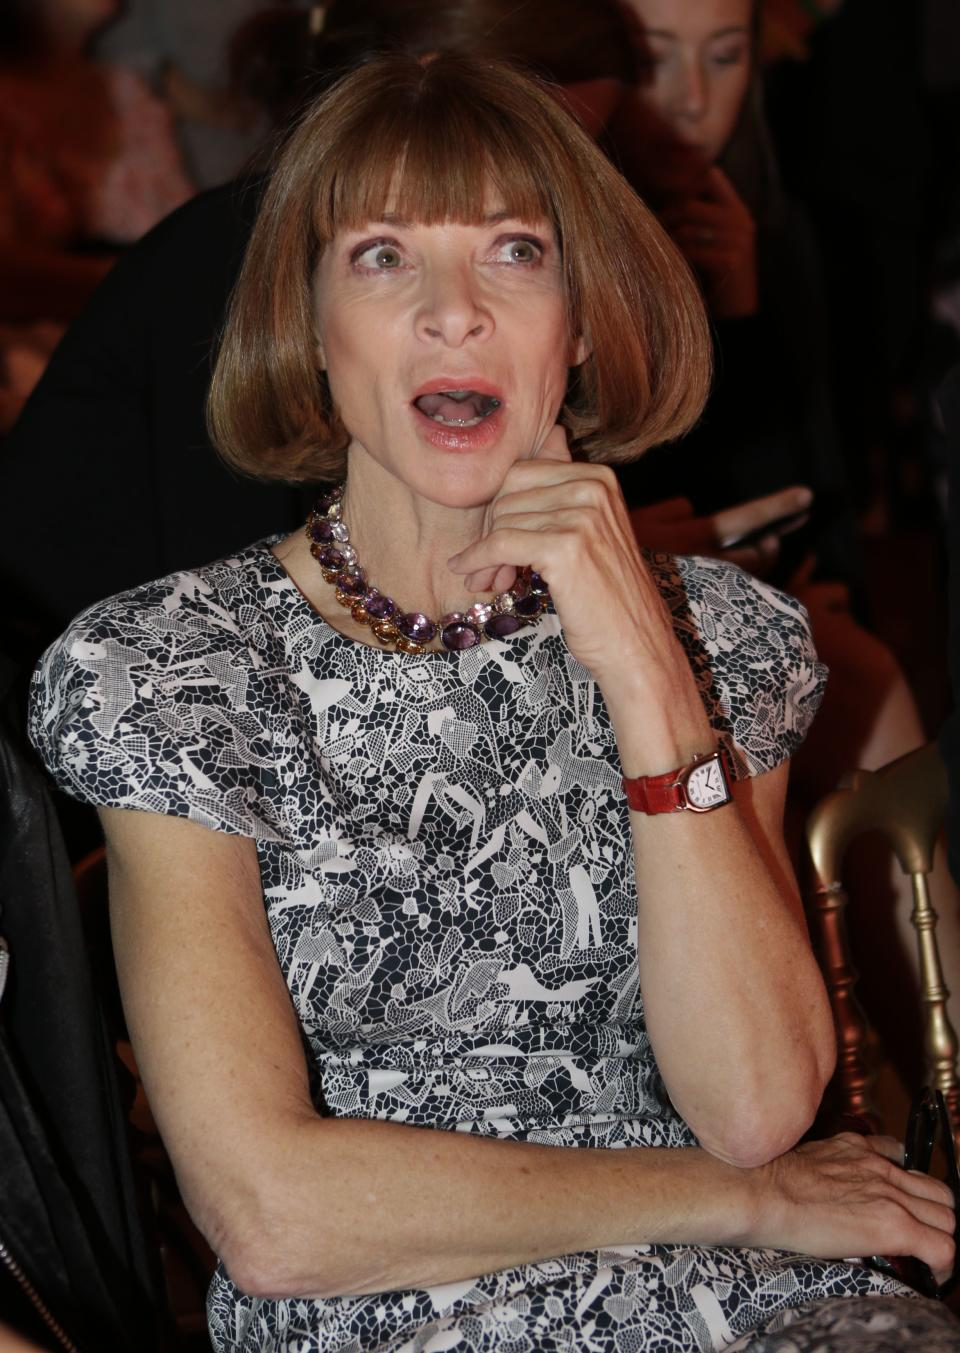 Vogue editor in chief Anna Wintour reacts as she attends the Versace women's Fall-Winter 2012-2013 collection that was presented in Milan, Italy, Friday Sept. 21, 2012.(AP Photo/Luca Bruno)